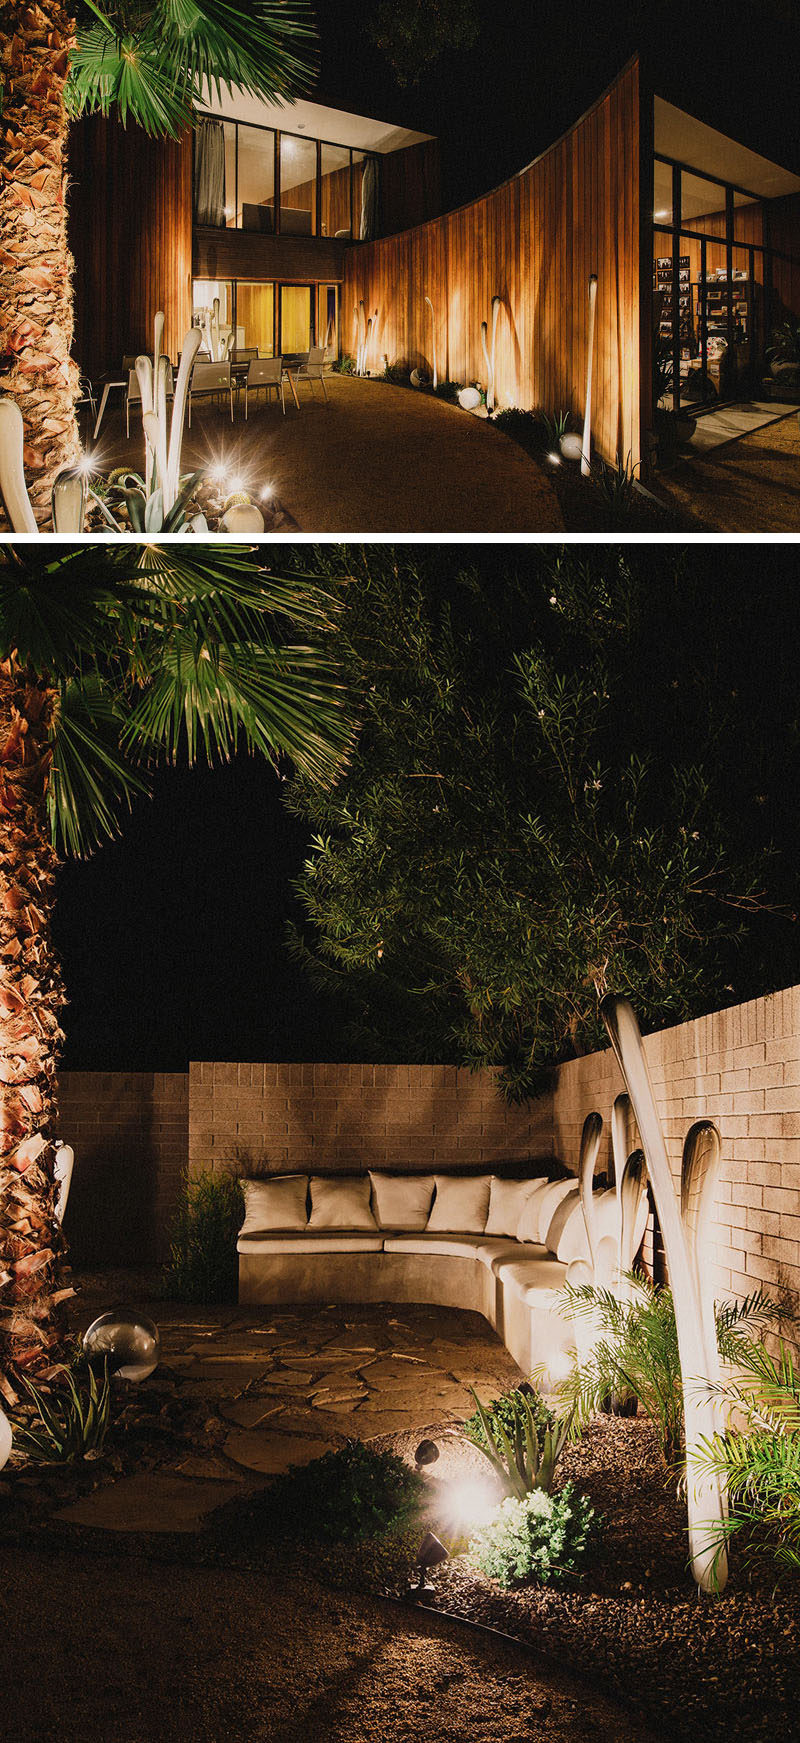 8 Outdoor Lighting Ideas To Inspire Your Spring Backyard Makeover Uplighting